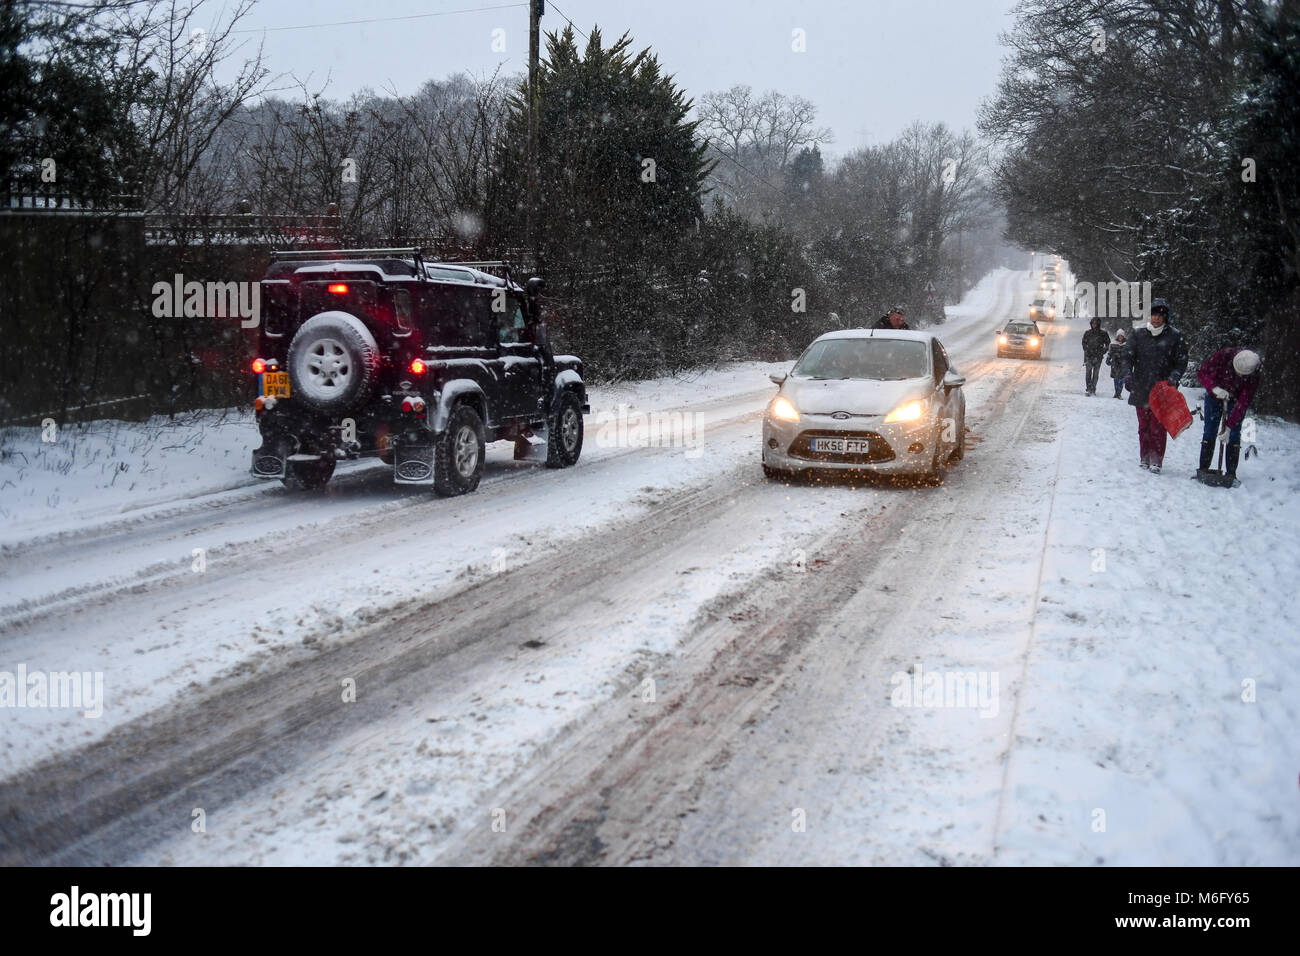 A 4x4 black  Land Rover makes its way along the A36 towards Salisbury as other traffic struggles in the slippery - Stock Image